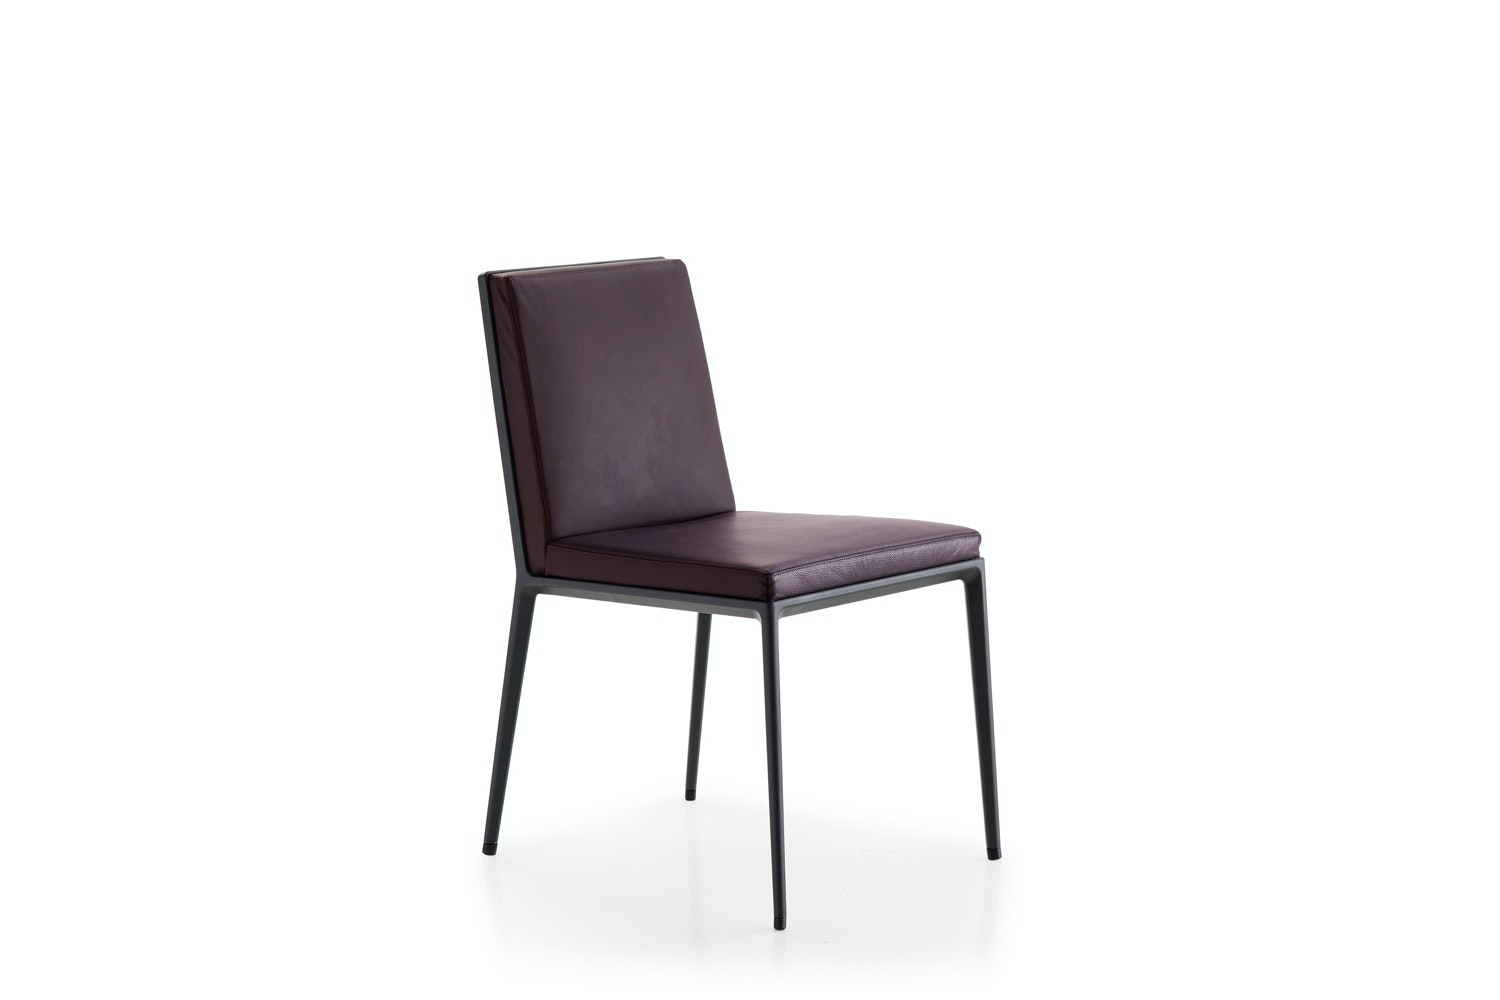 Caratos Chair by Antonio Citterio for Maxalto